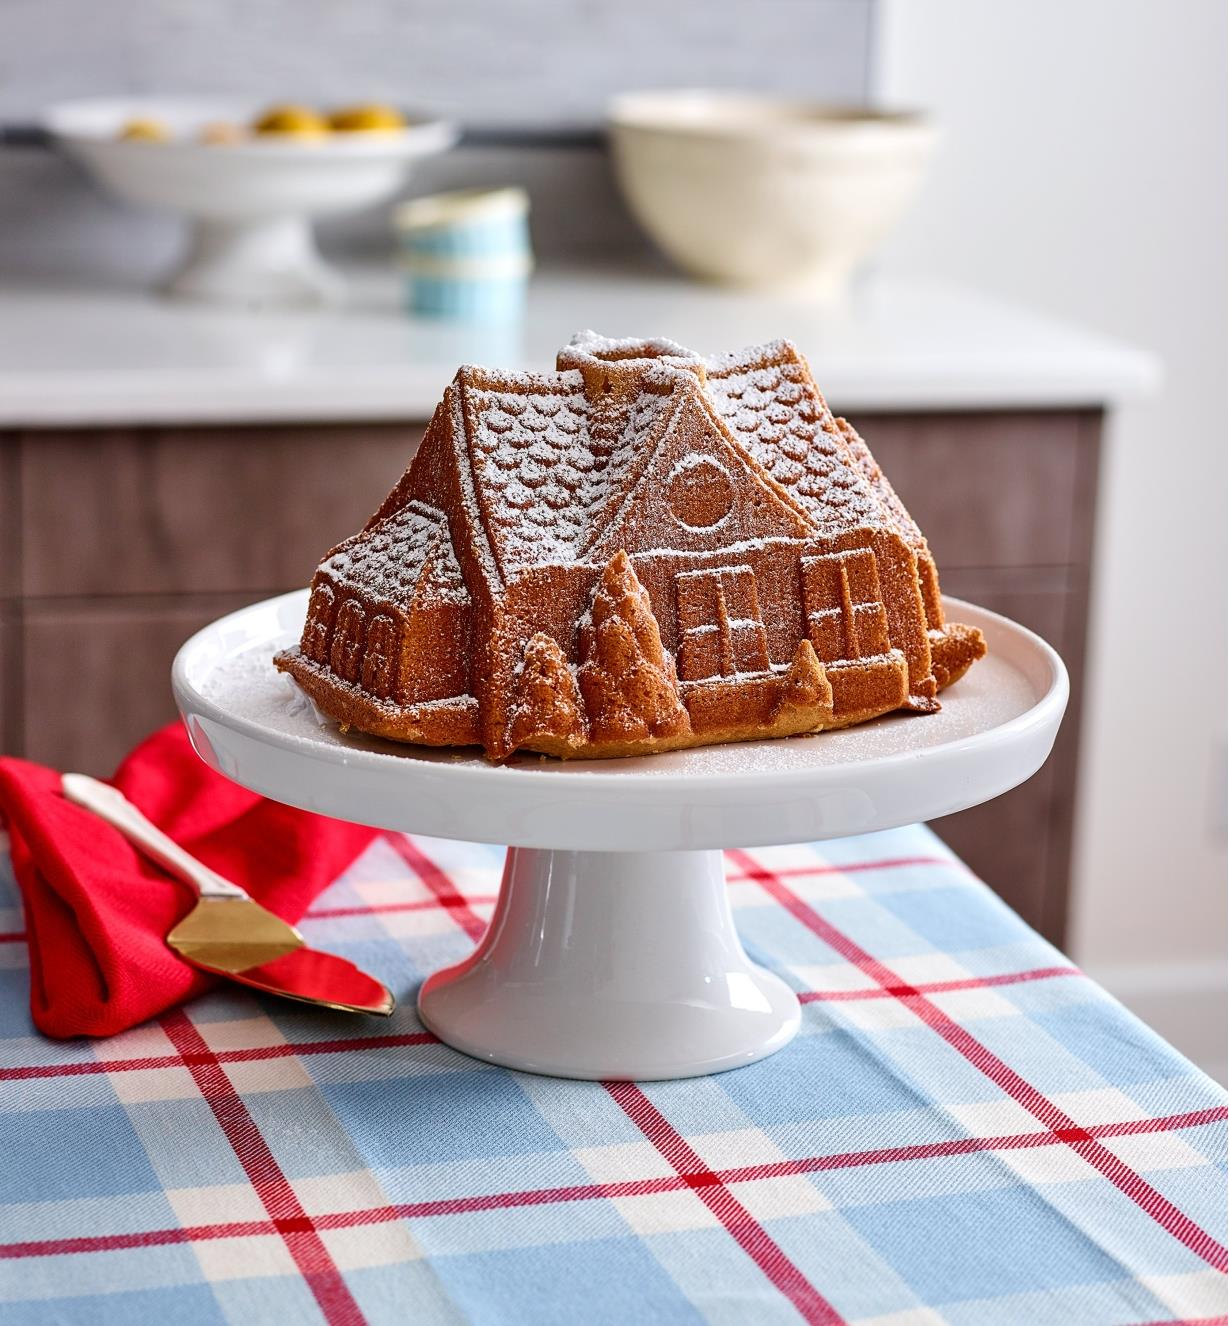 A gingerbread house cake dusted with powdered sugar